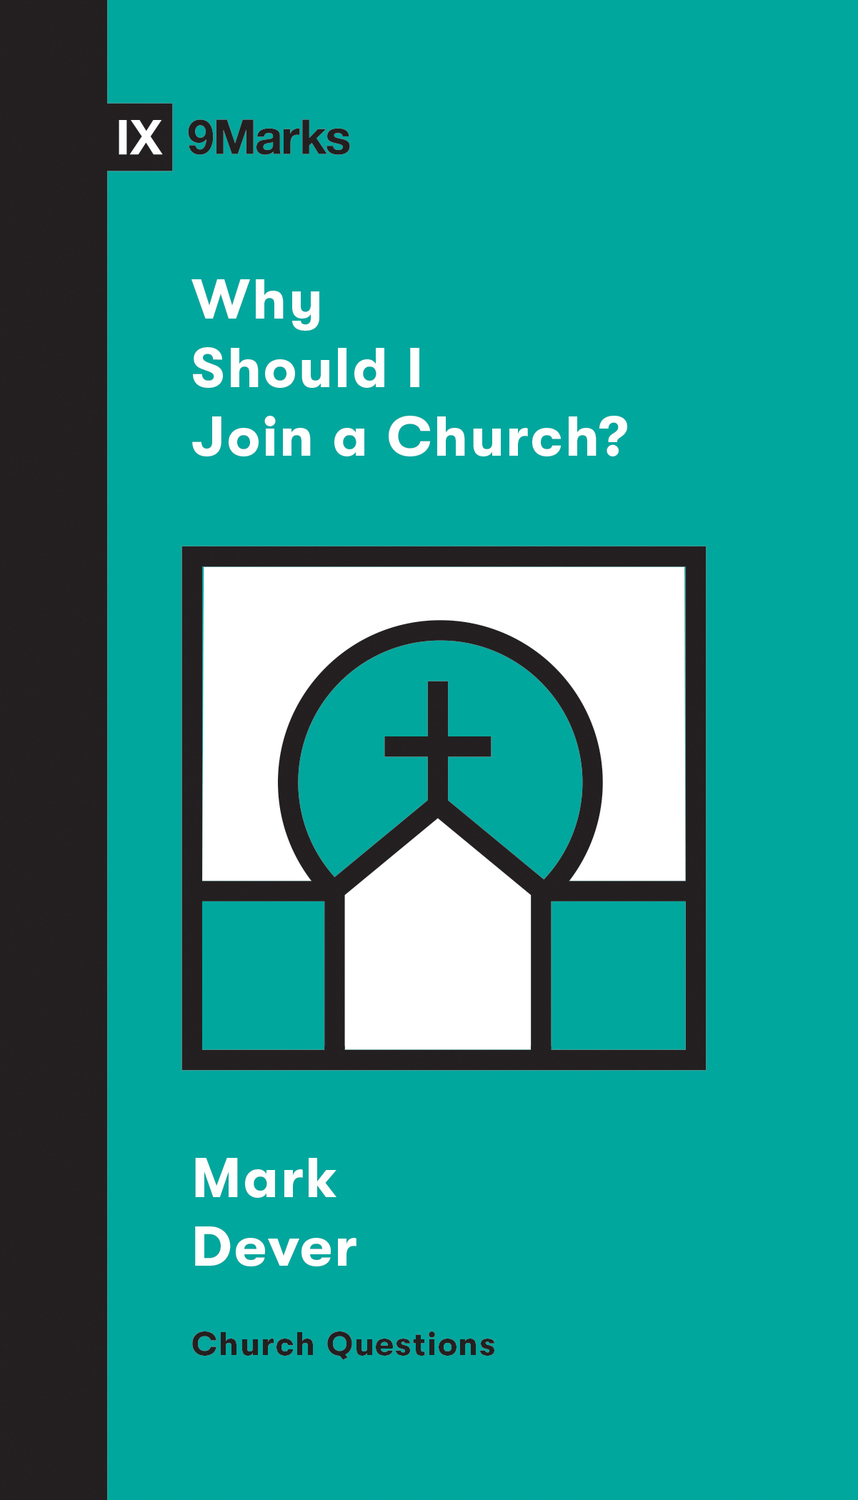 Why Should I Join a Church?